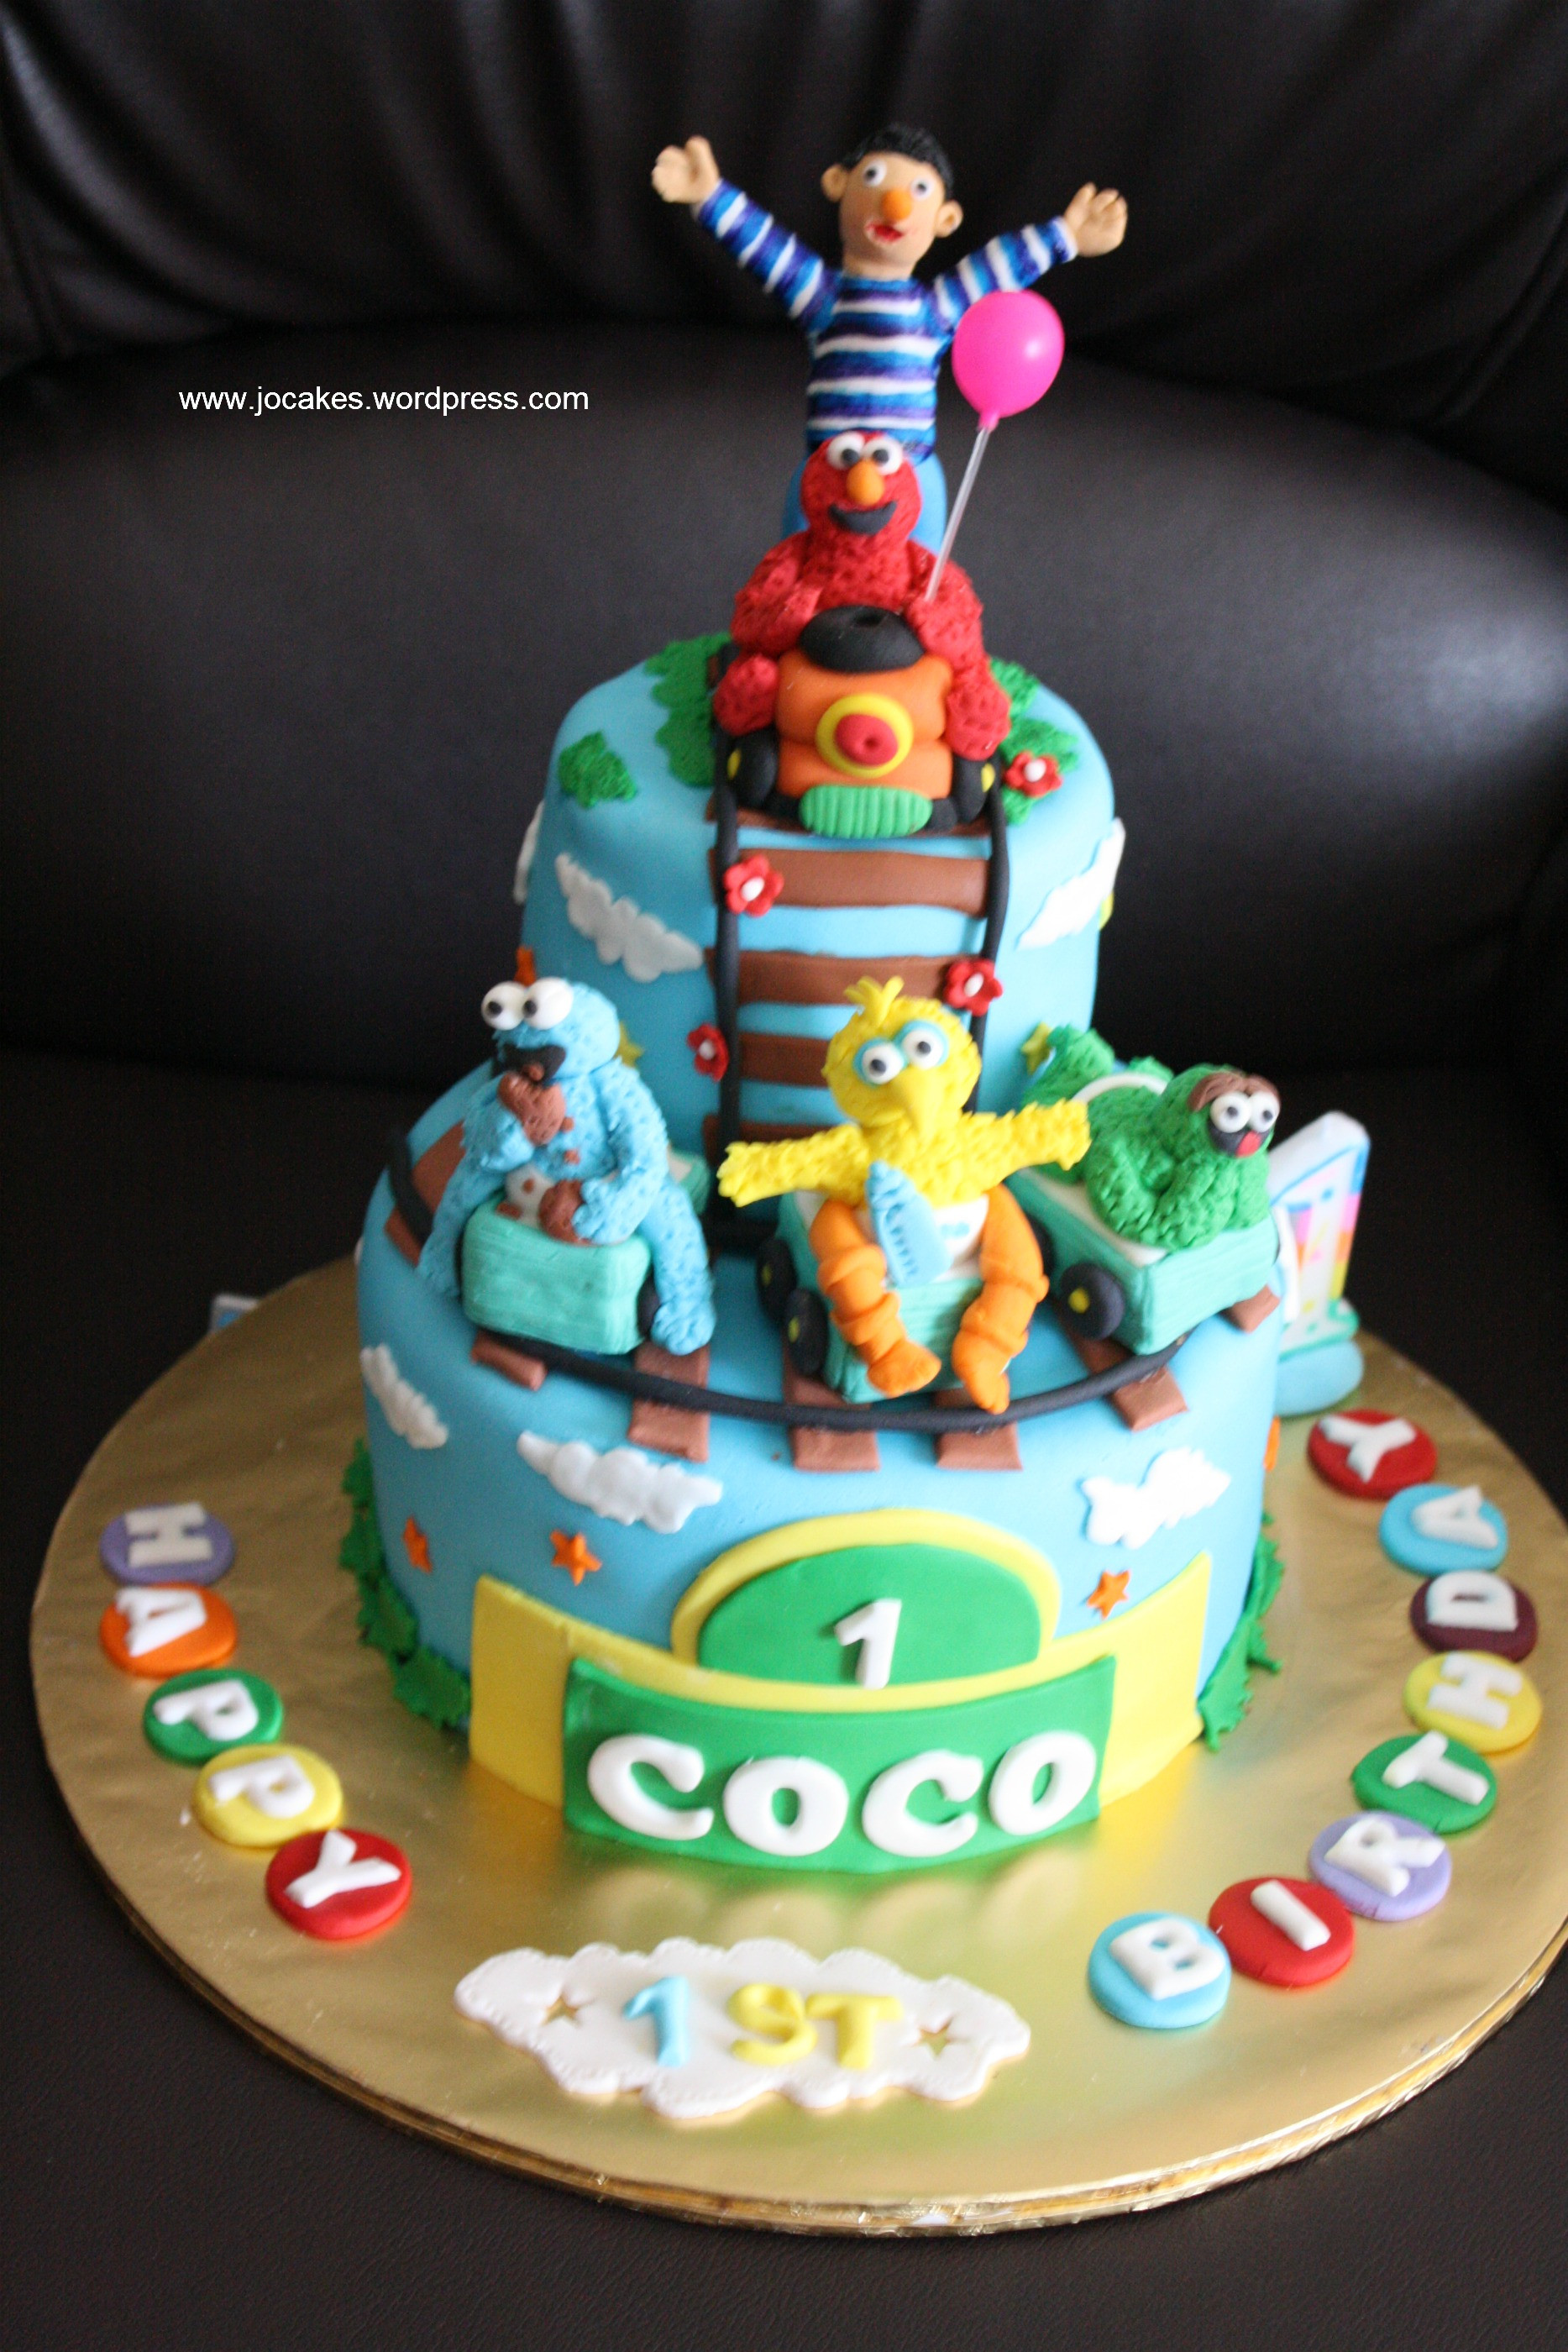 Best ideas about 1 Year Old Birthday Cake . Save or Pin Sesame Street birthday cake for 1 year old girl Now.